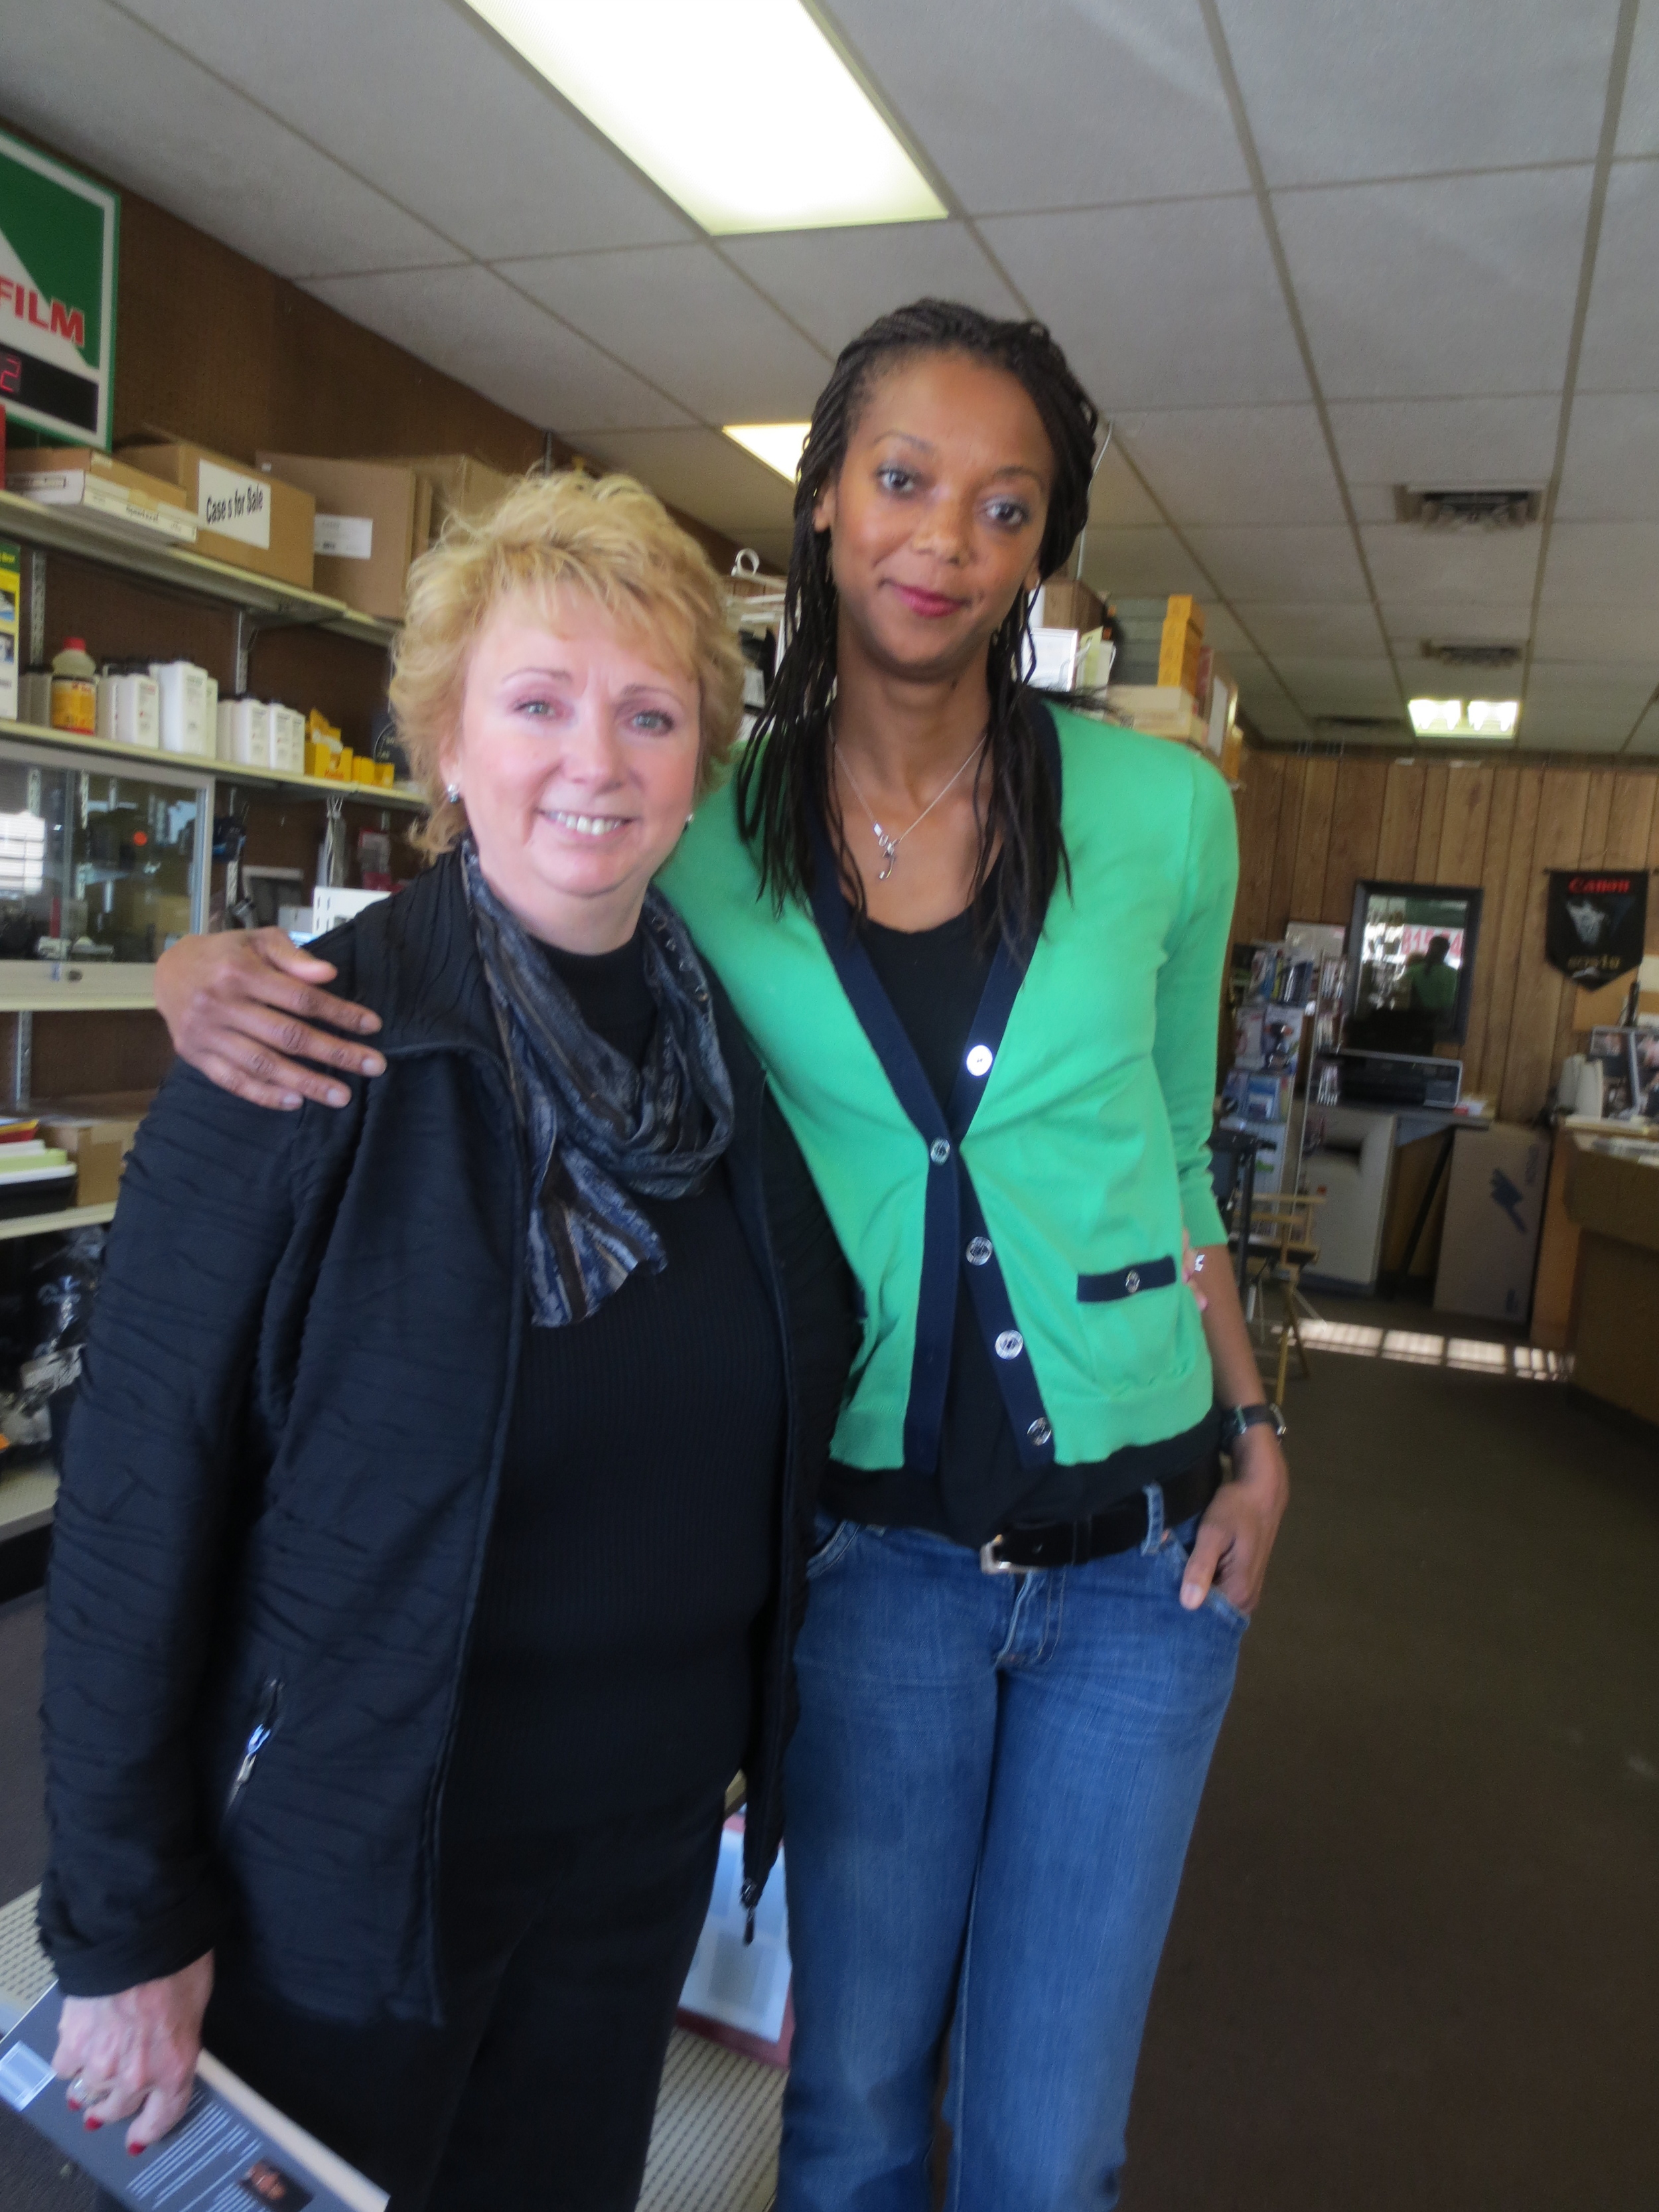 With one of my English teachers from junior high, Barbara Eberhard, or Ms. Porazinski as she was known then, at the Camera House, her now business that she runs with her husband, Steve.